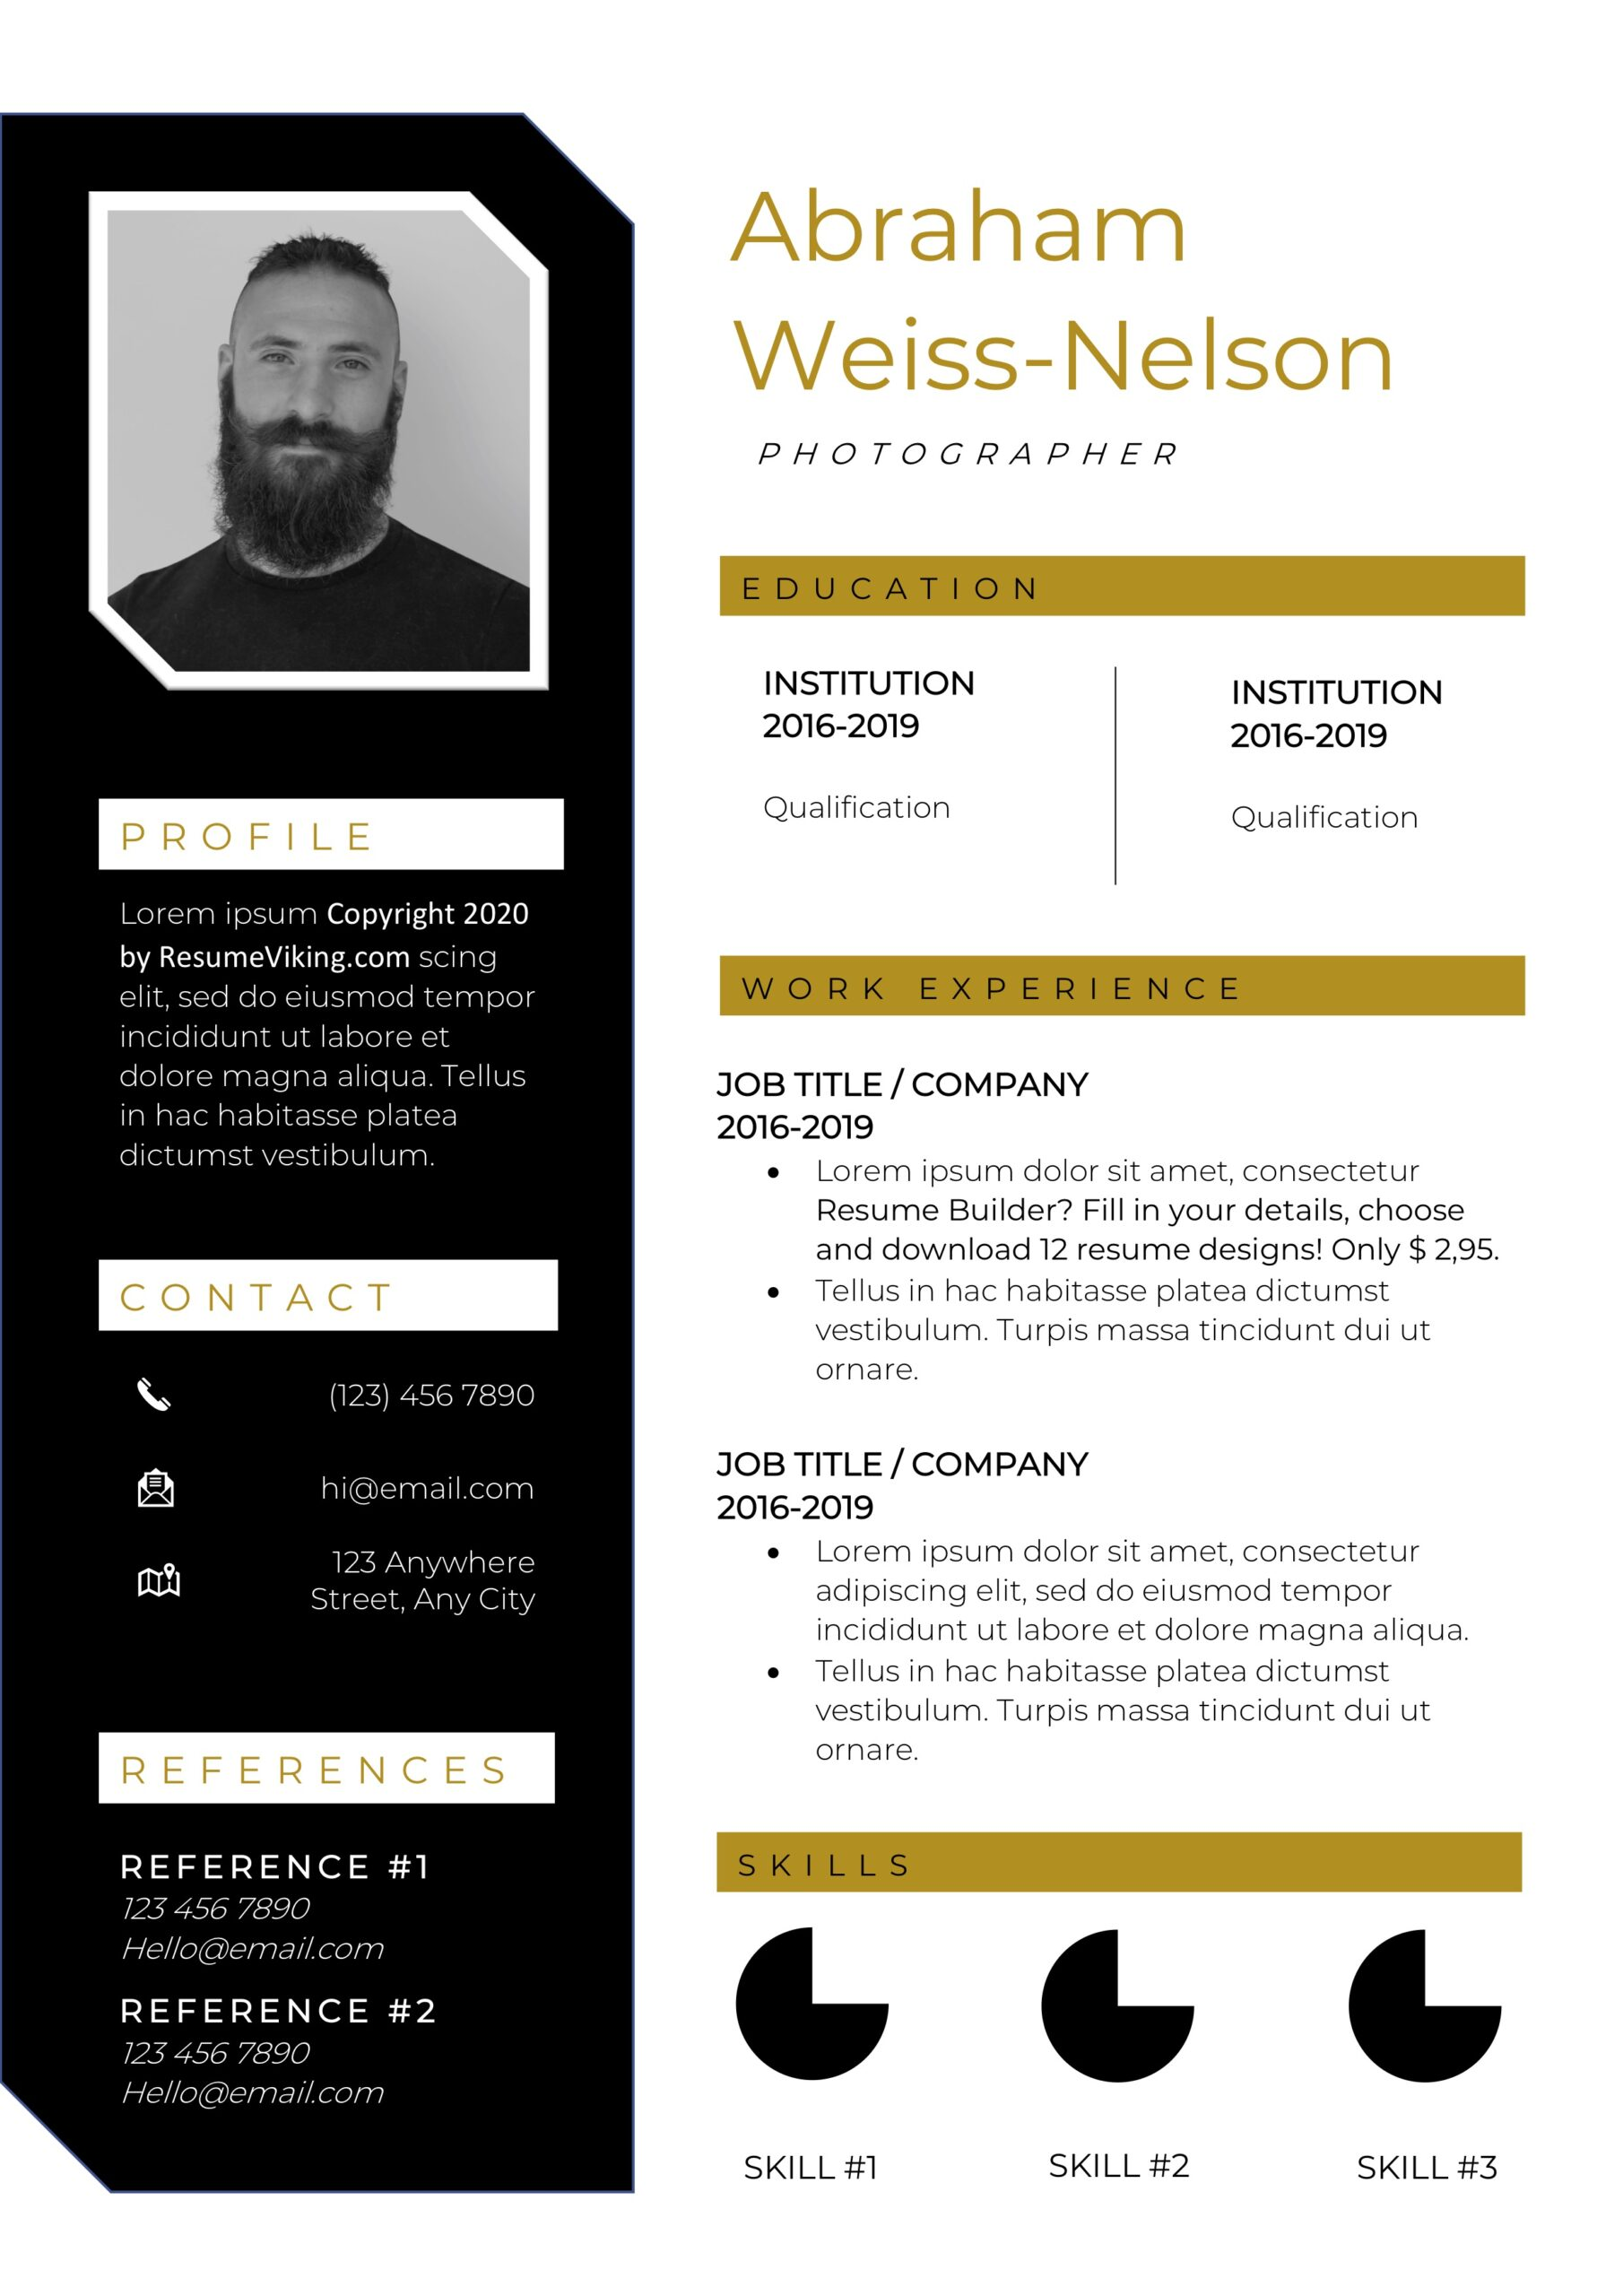 resume templates pdf word free downloads and guides creative examples grace resumeviking Resume Creative Resume Examples 2020